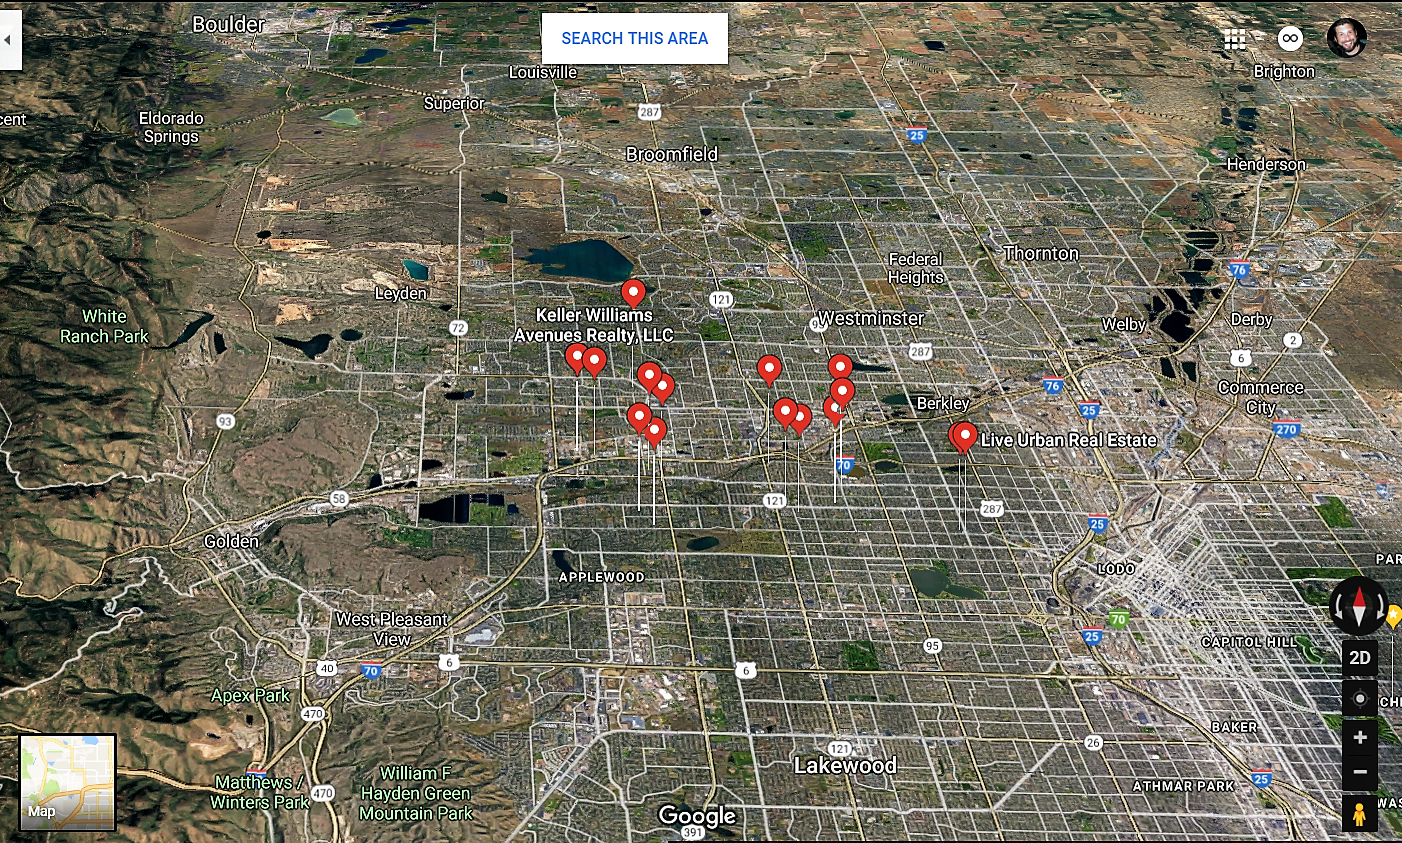 Wheat Ridge Colorado Google Maps Real Estate Realtors and Mortgage Loans